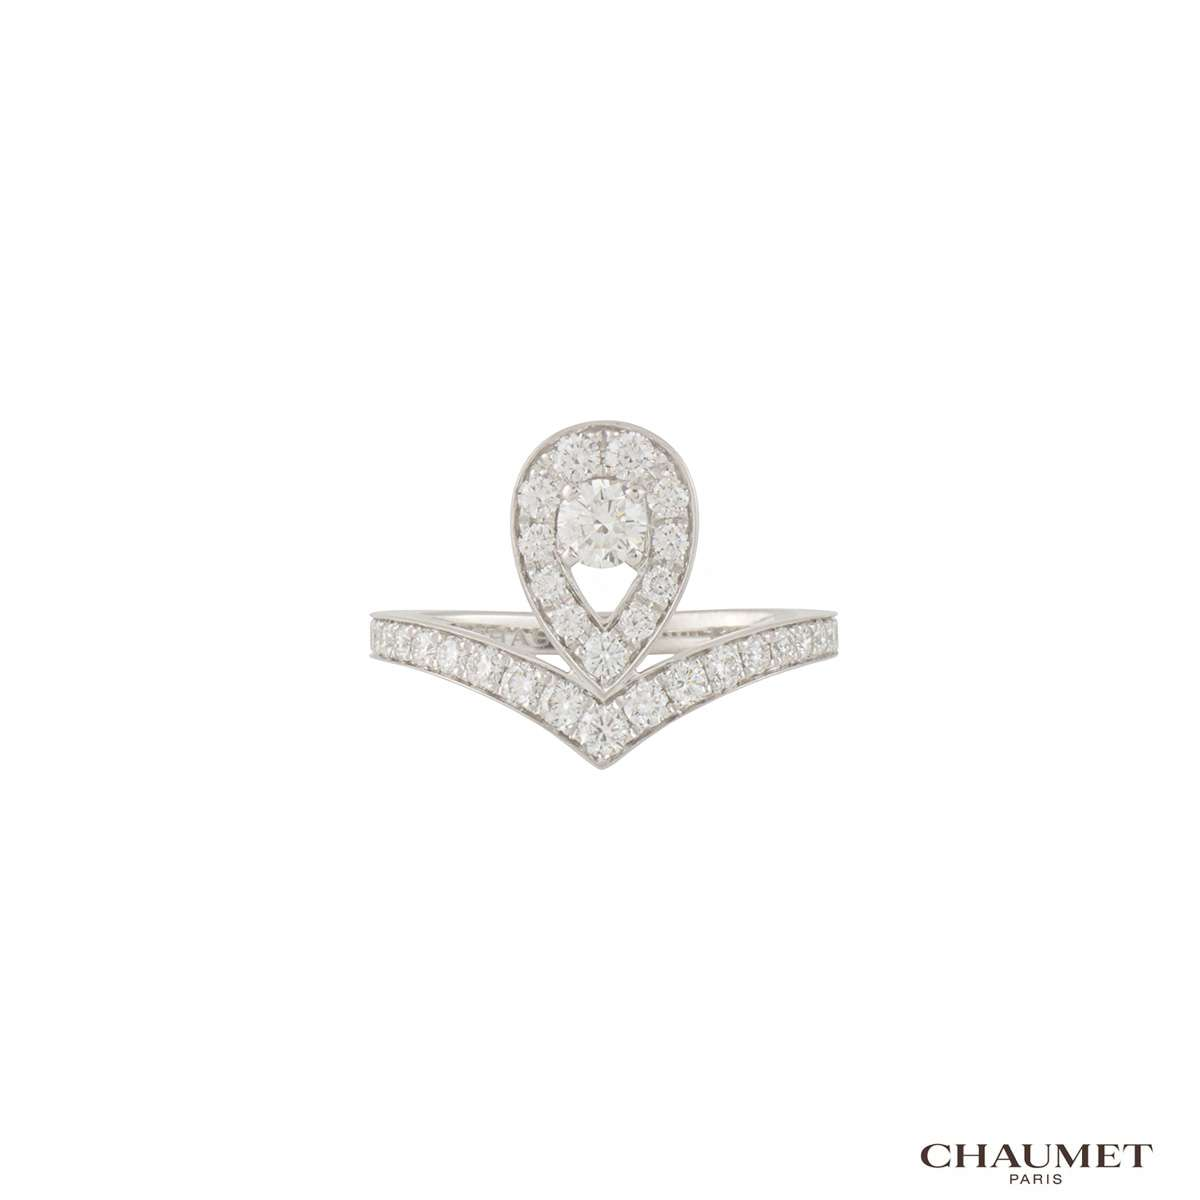 Chaumet White Gold Diamond Josephine Aigrette Ring 081990